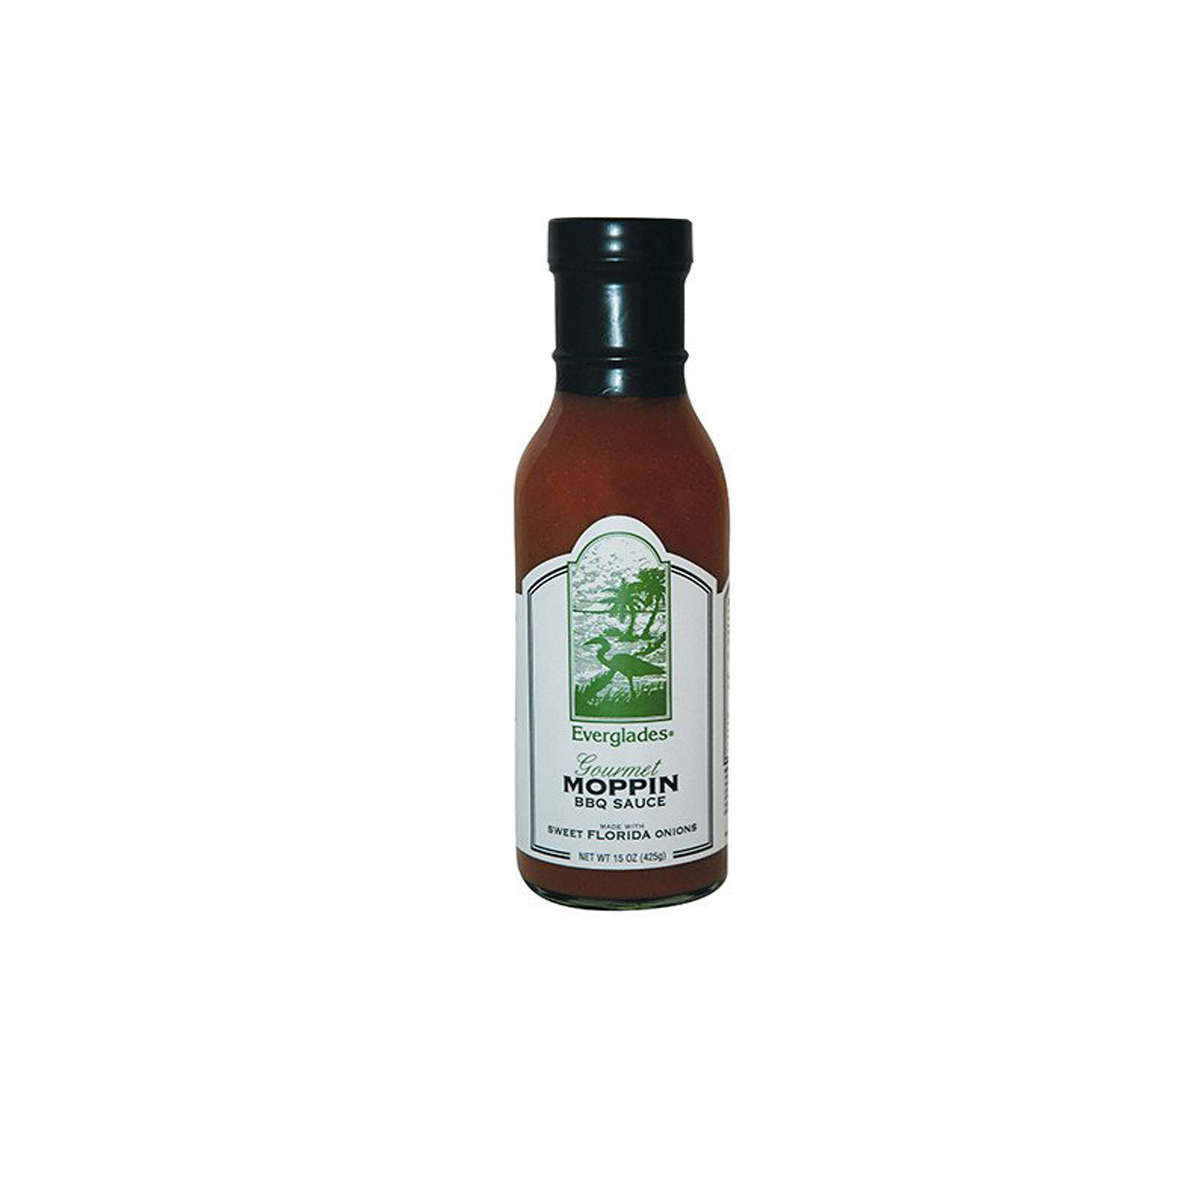 Everglades Seasonings Moppin' BBQ Sauce Sweet Onion Fresh From Florida 15oz, used for sale  USA